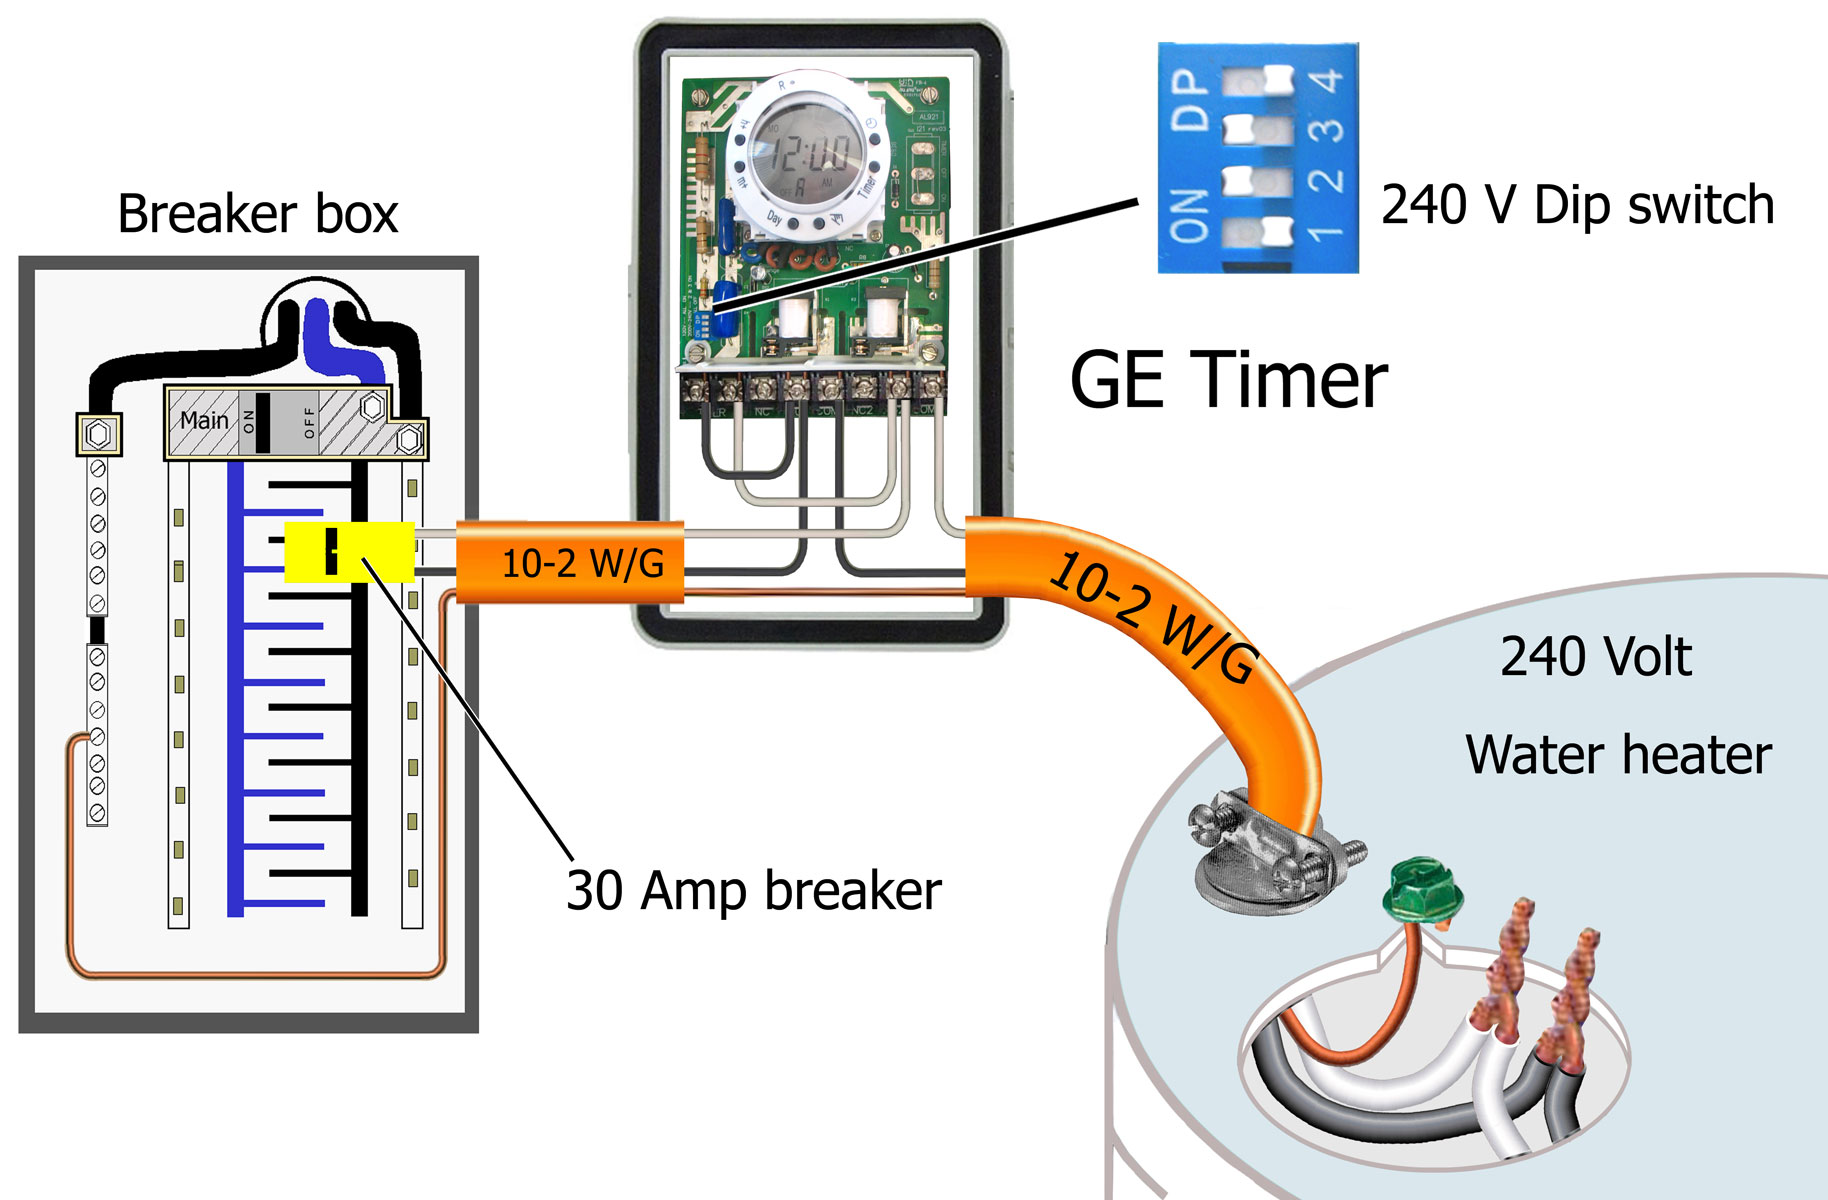 GE to water heater 500a how to wire ge 15136 timer wiring diagram for a hot water heater at gsmportal.co